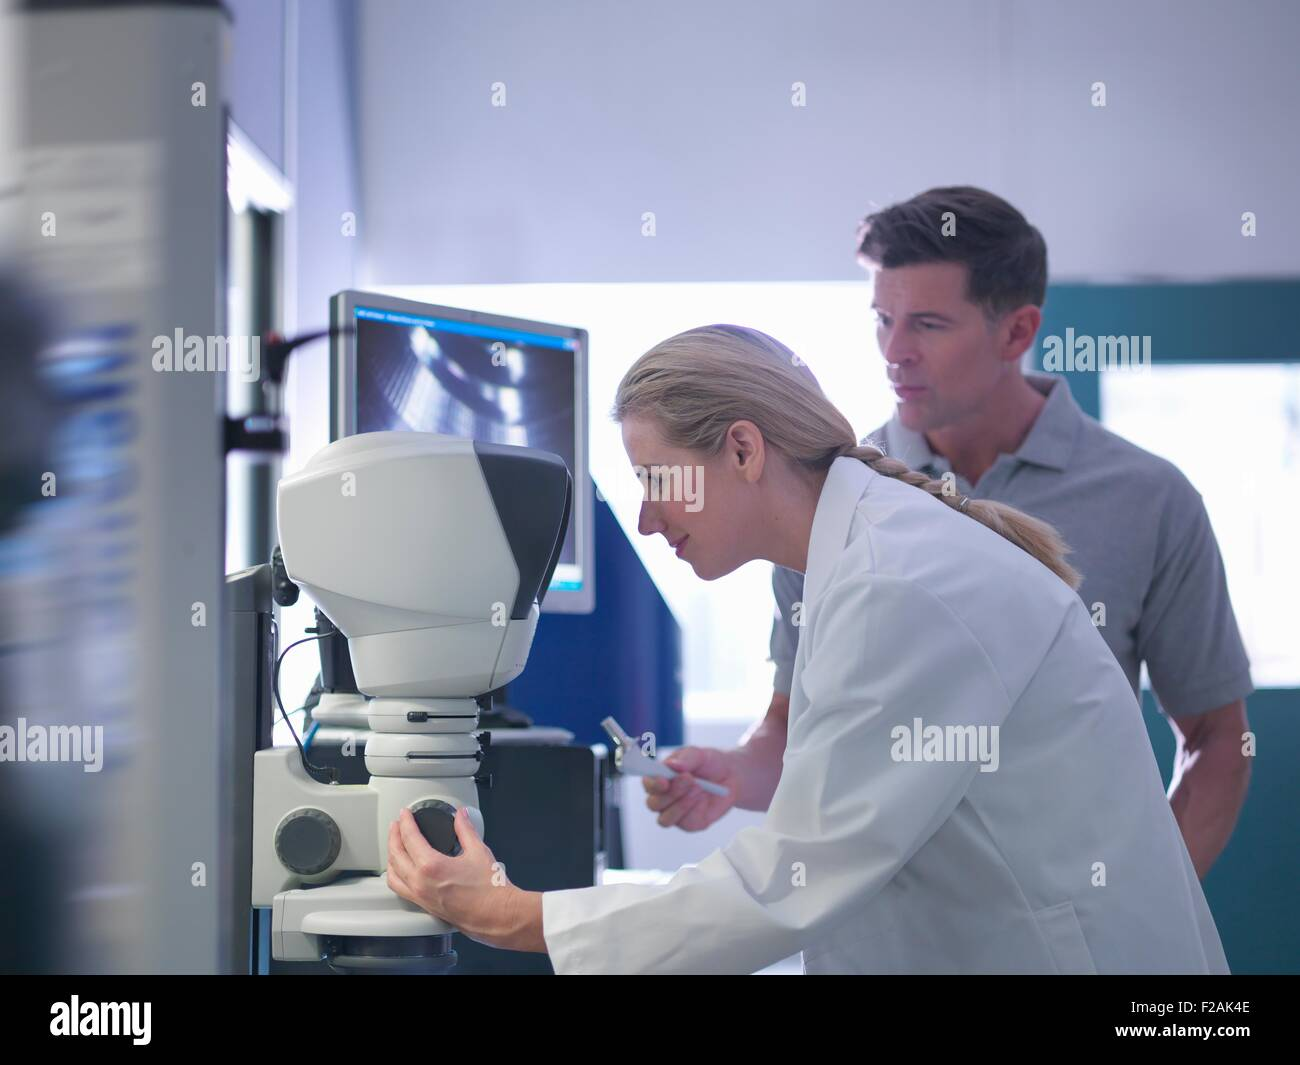 Engineers inspecting artificial hip joint parts using electron microscope in orthopaedic factory - Stock Image